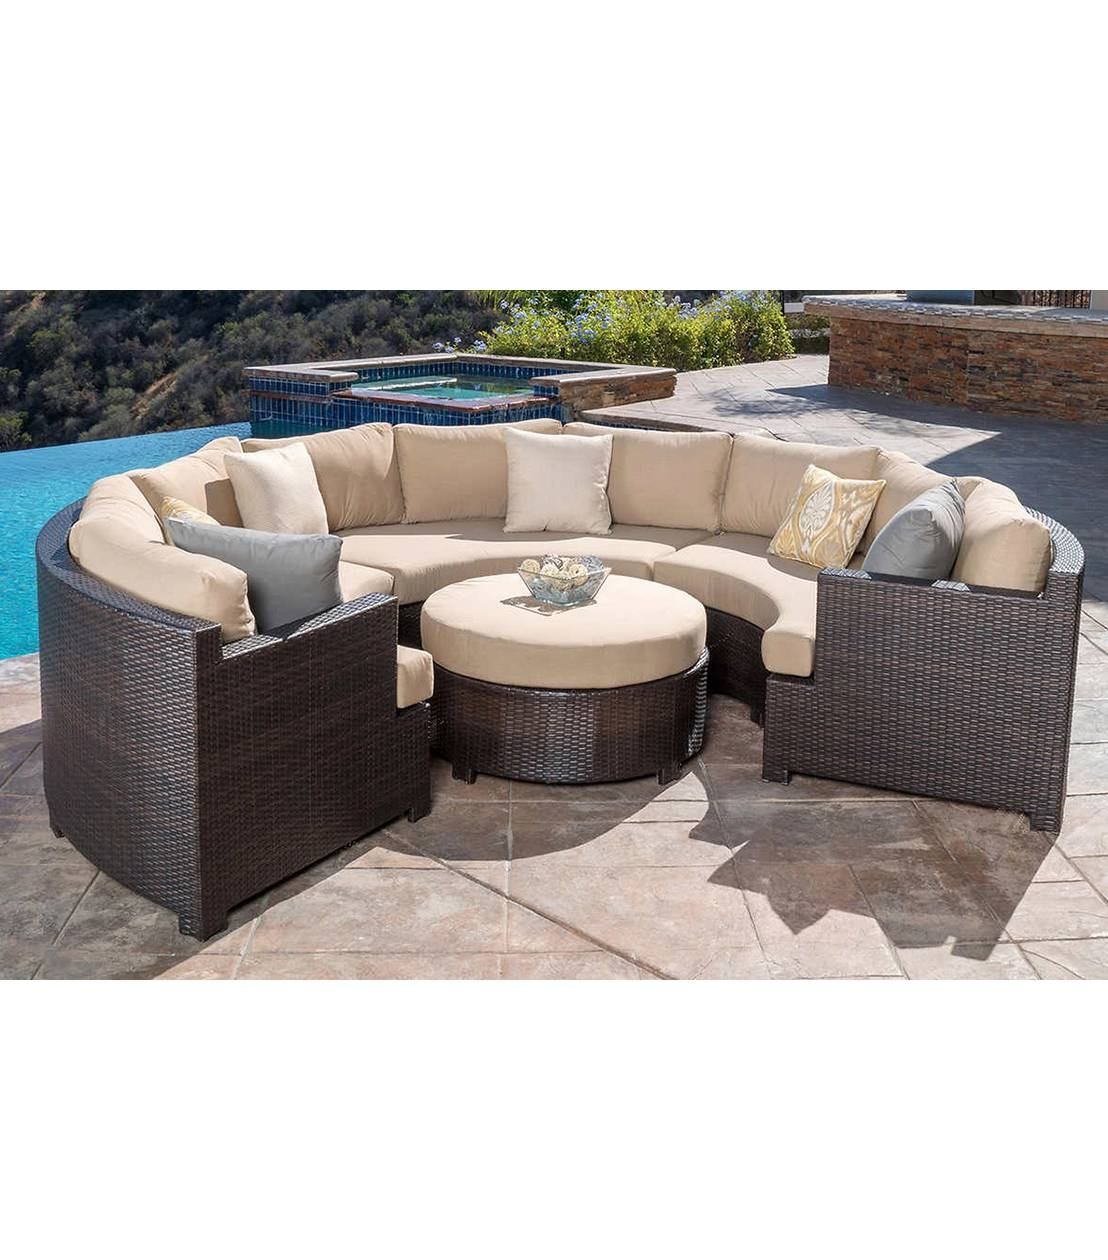 Patio Furniture : Belmont 4-Piece Curved Sectional Set for 6 Piece Modular Sectional Sofa (Image 19 of 30)